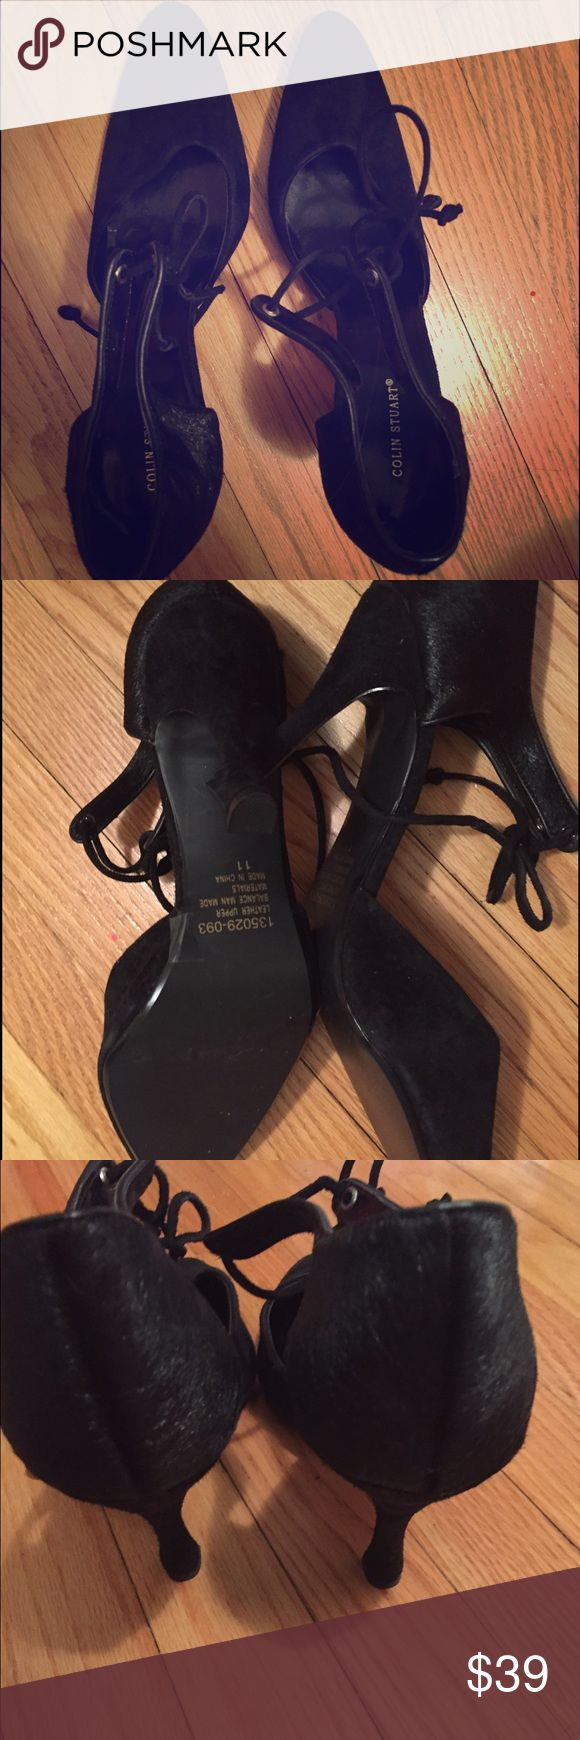 """Colin Stuart suede shoes Great condition.  Leather/suede and the part around the heel seems to be made of calf hair but shoe says man made.  4"""" heel. Very sexy show ties with a suede string Colin Stuart Shoes Heels"""